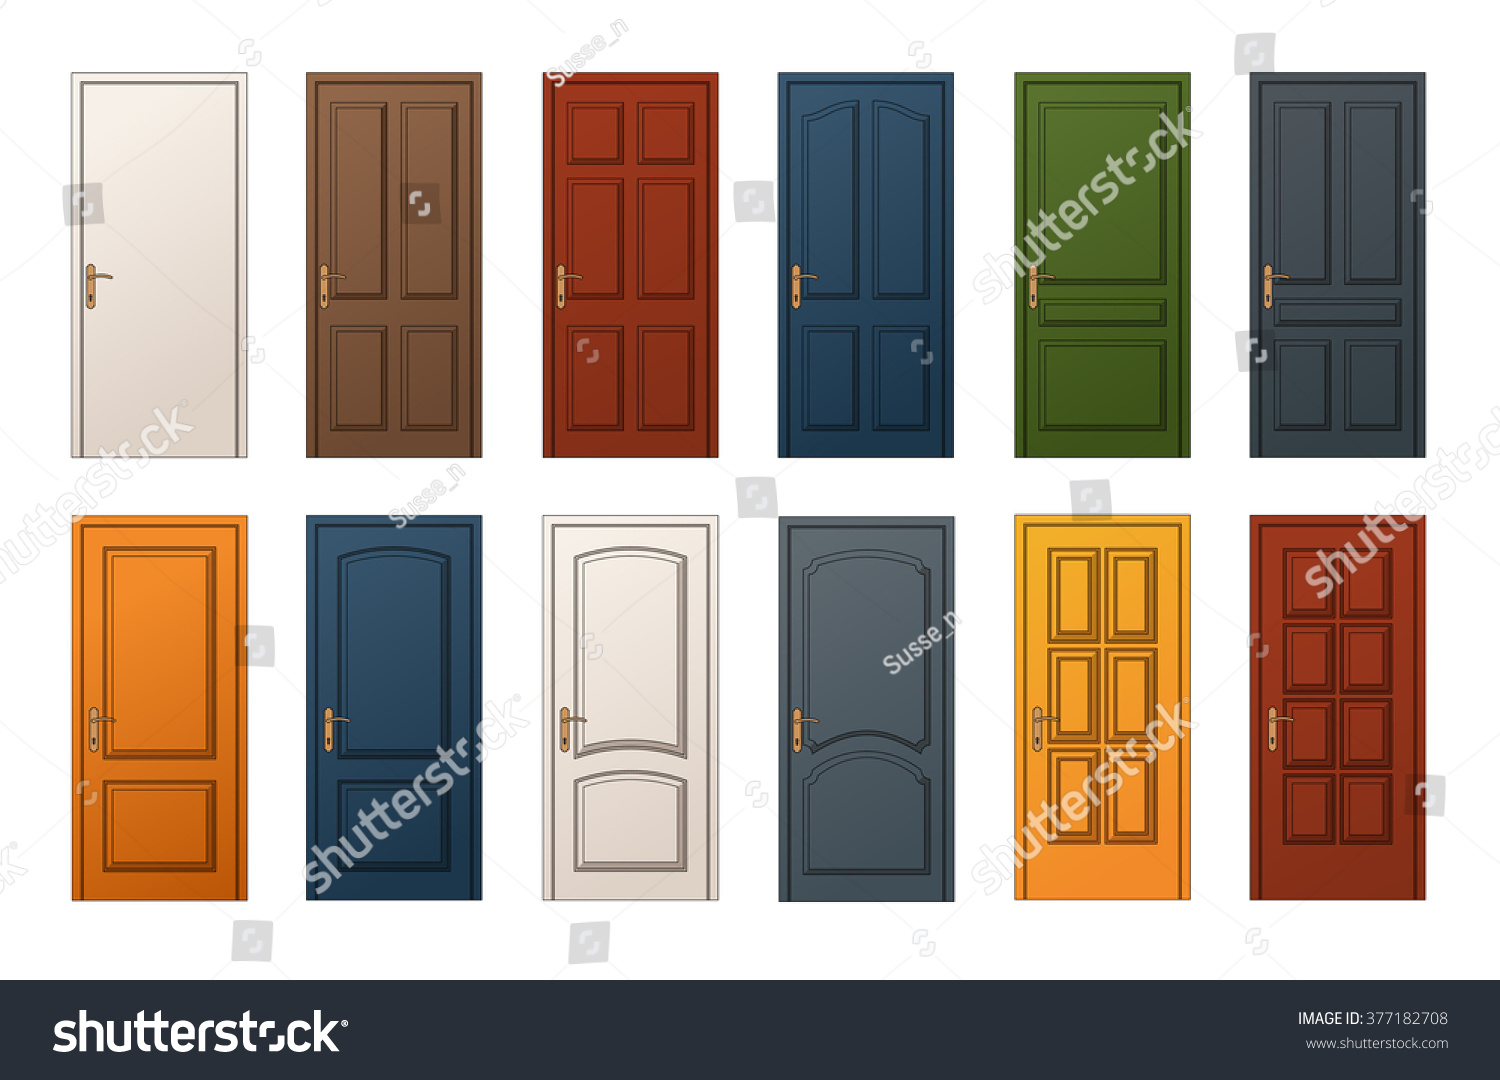 12 Colorful Wooden Doors Templates Collection Stock Vector (Royalty ...